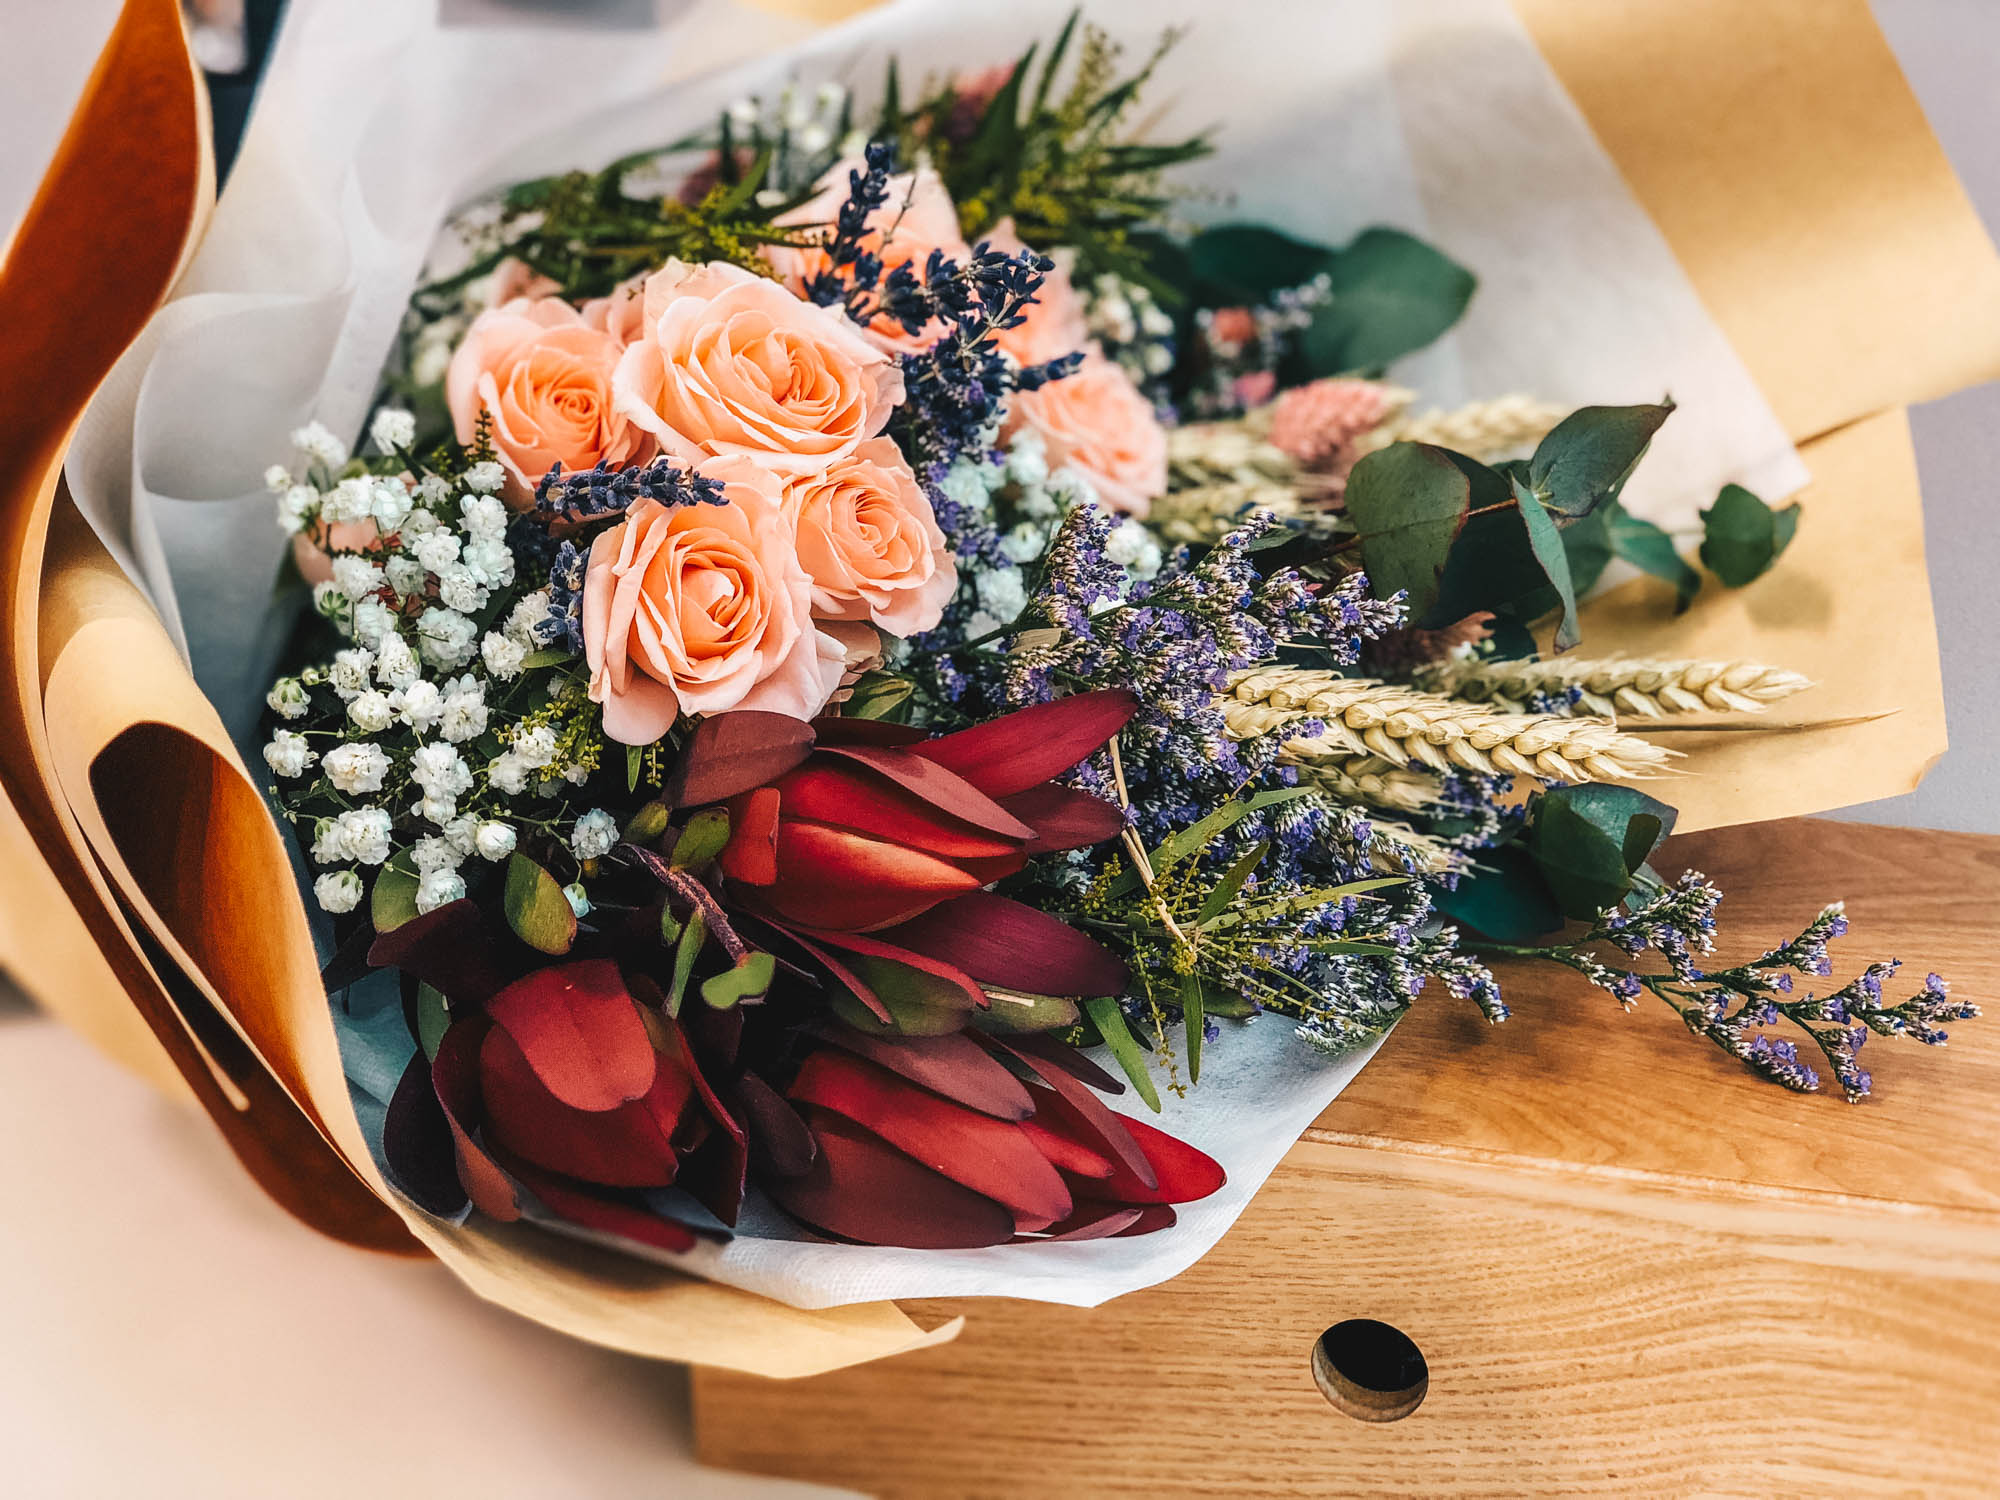 Valentine's Day Flowers from Floral Garage